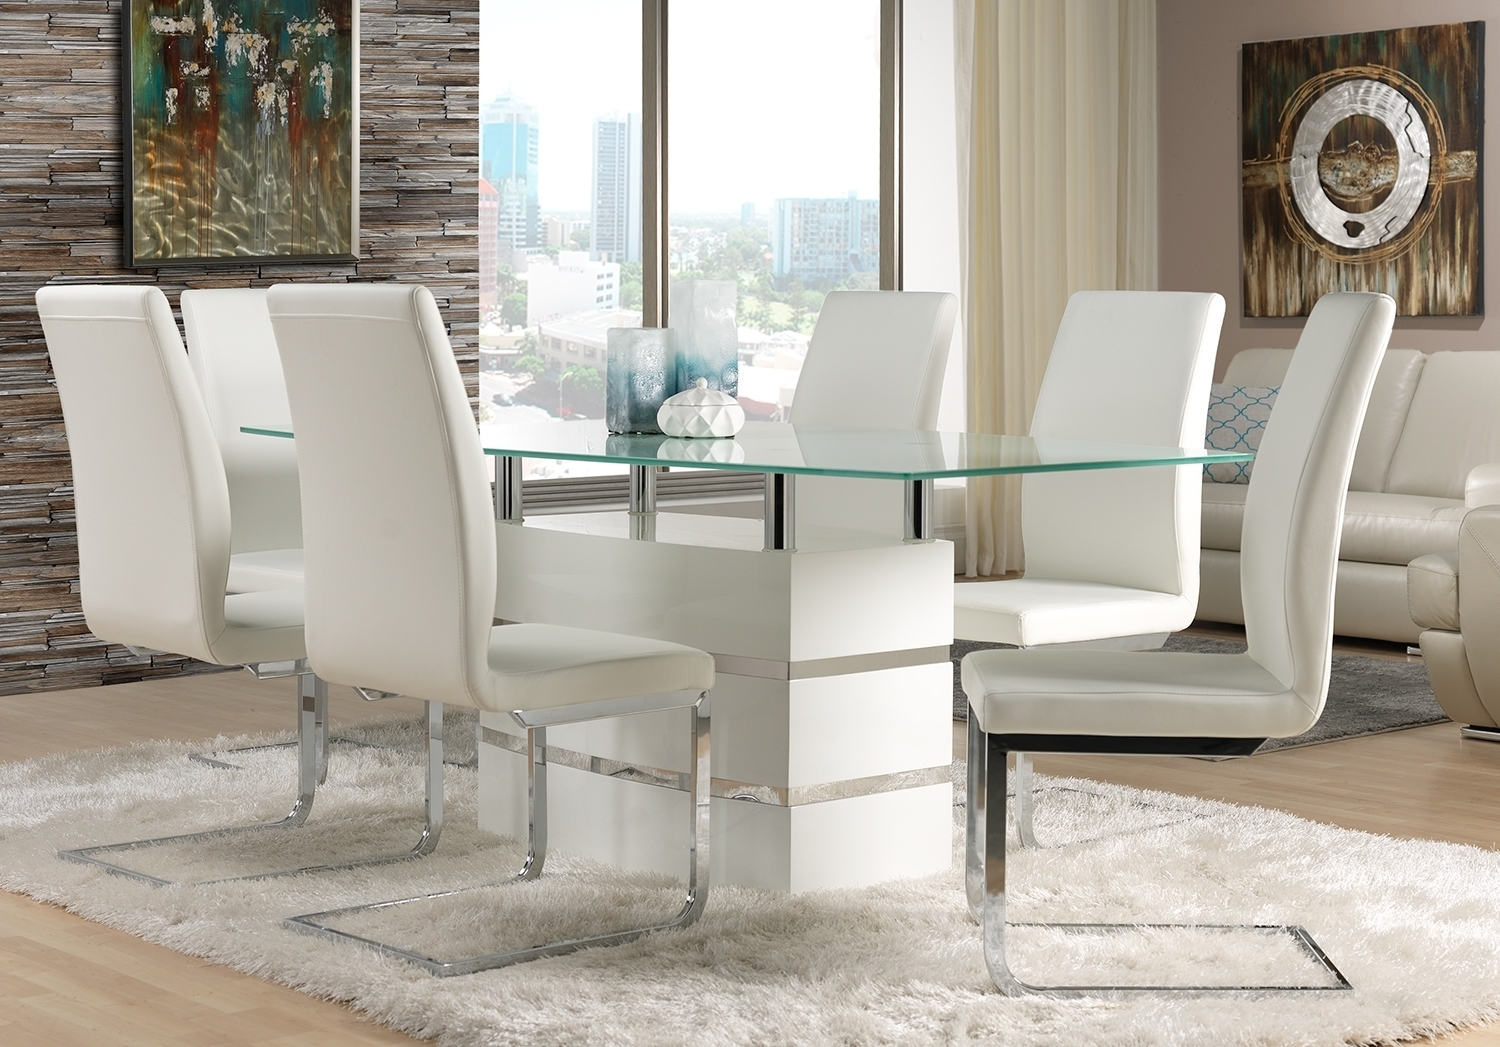 Chair Fabulous Glass Dining Table And White Leather Dining Chair With Regard To Favorite Glass Dining Tables And Leather Chairs (View 9 of 25)